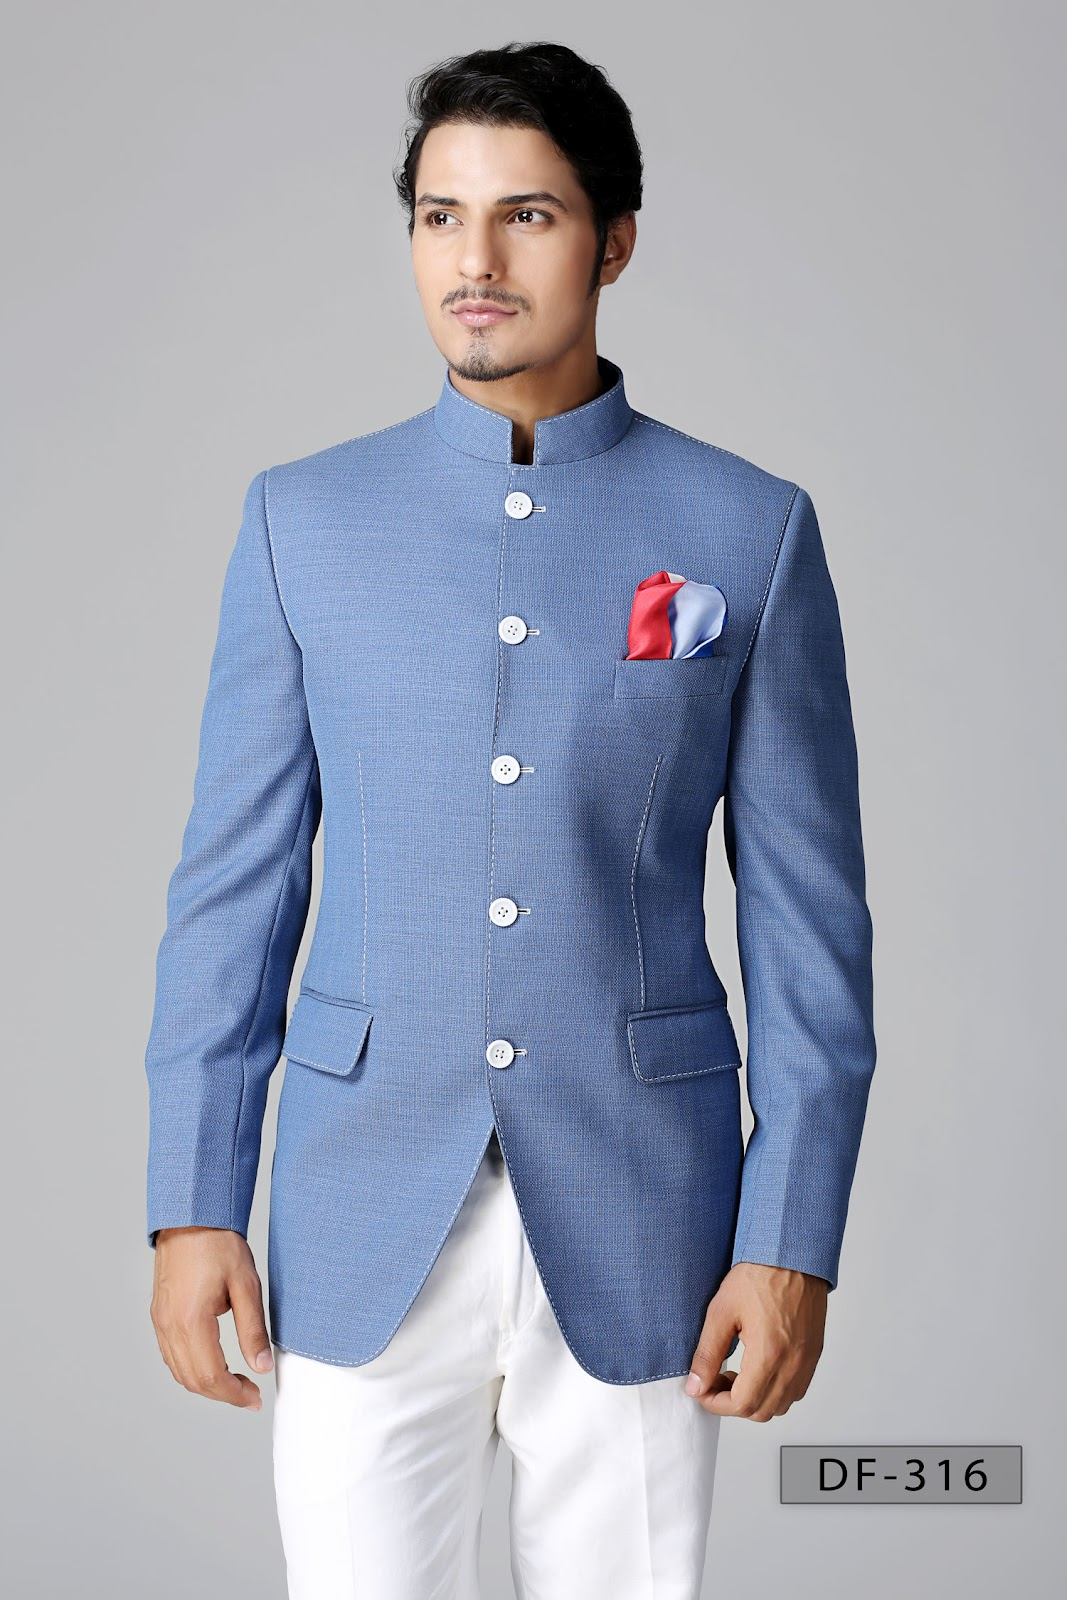 Modern 3 Piece Suits for Men | Three Piece Suit | Indian Office Wear ...